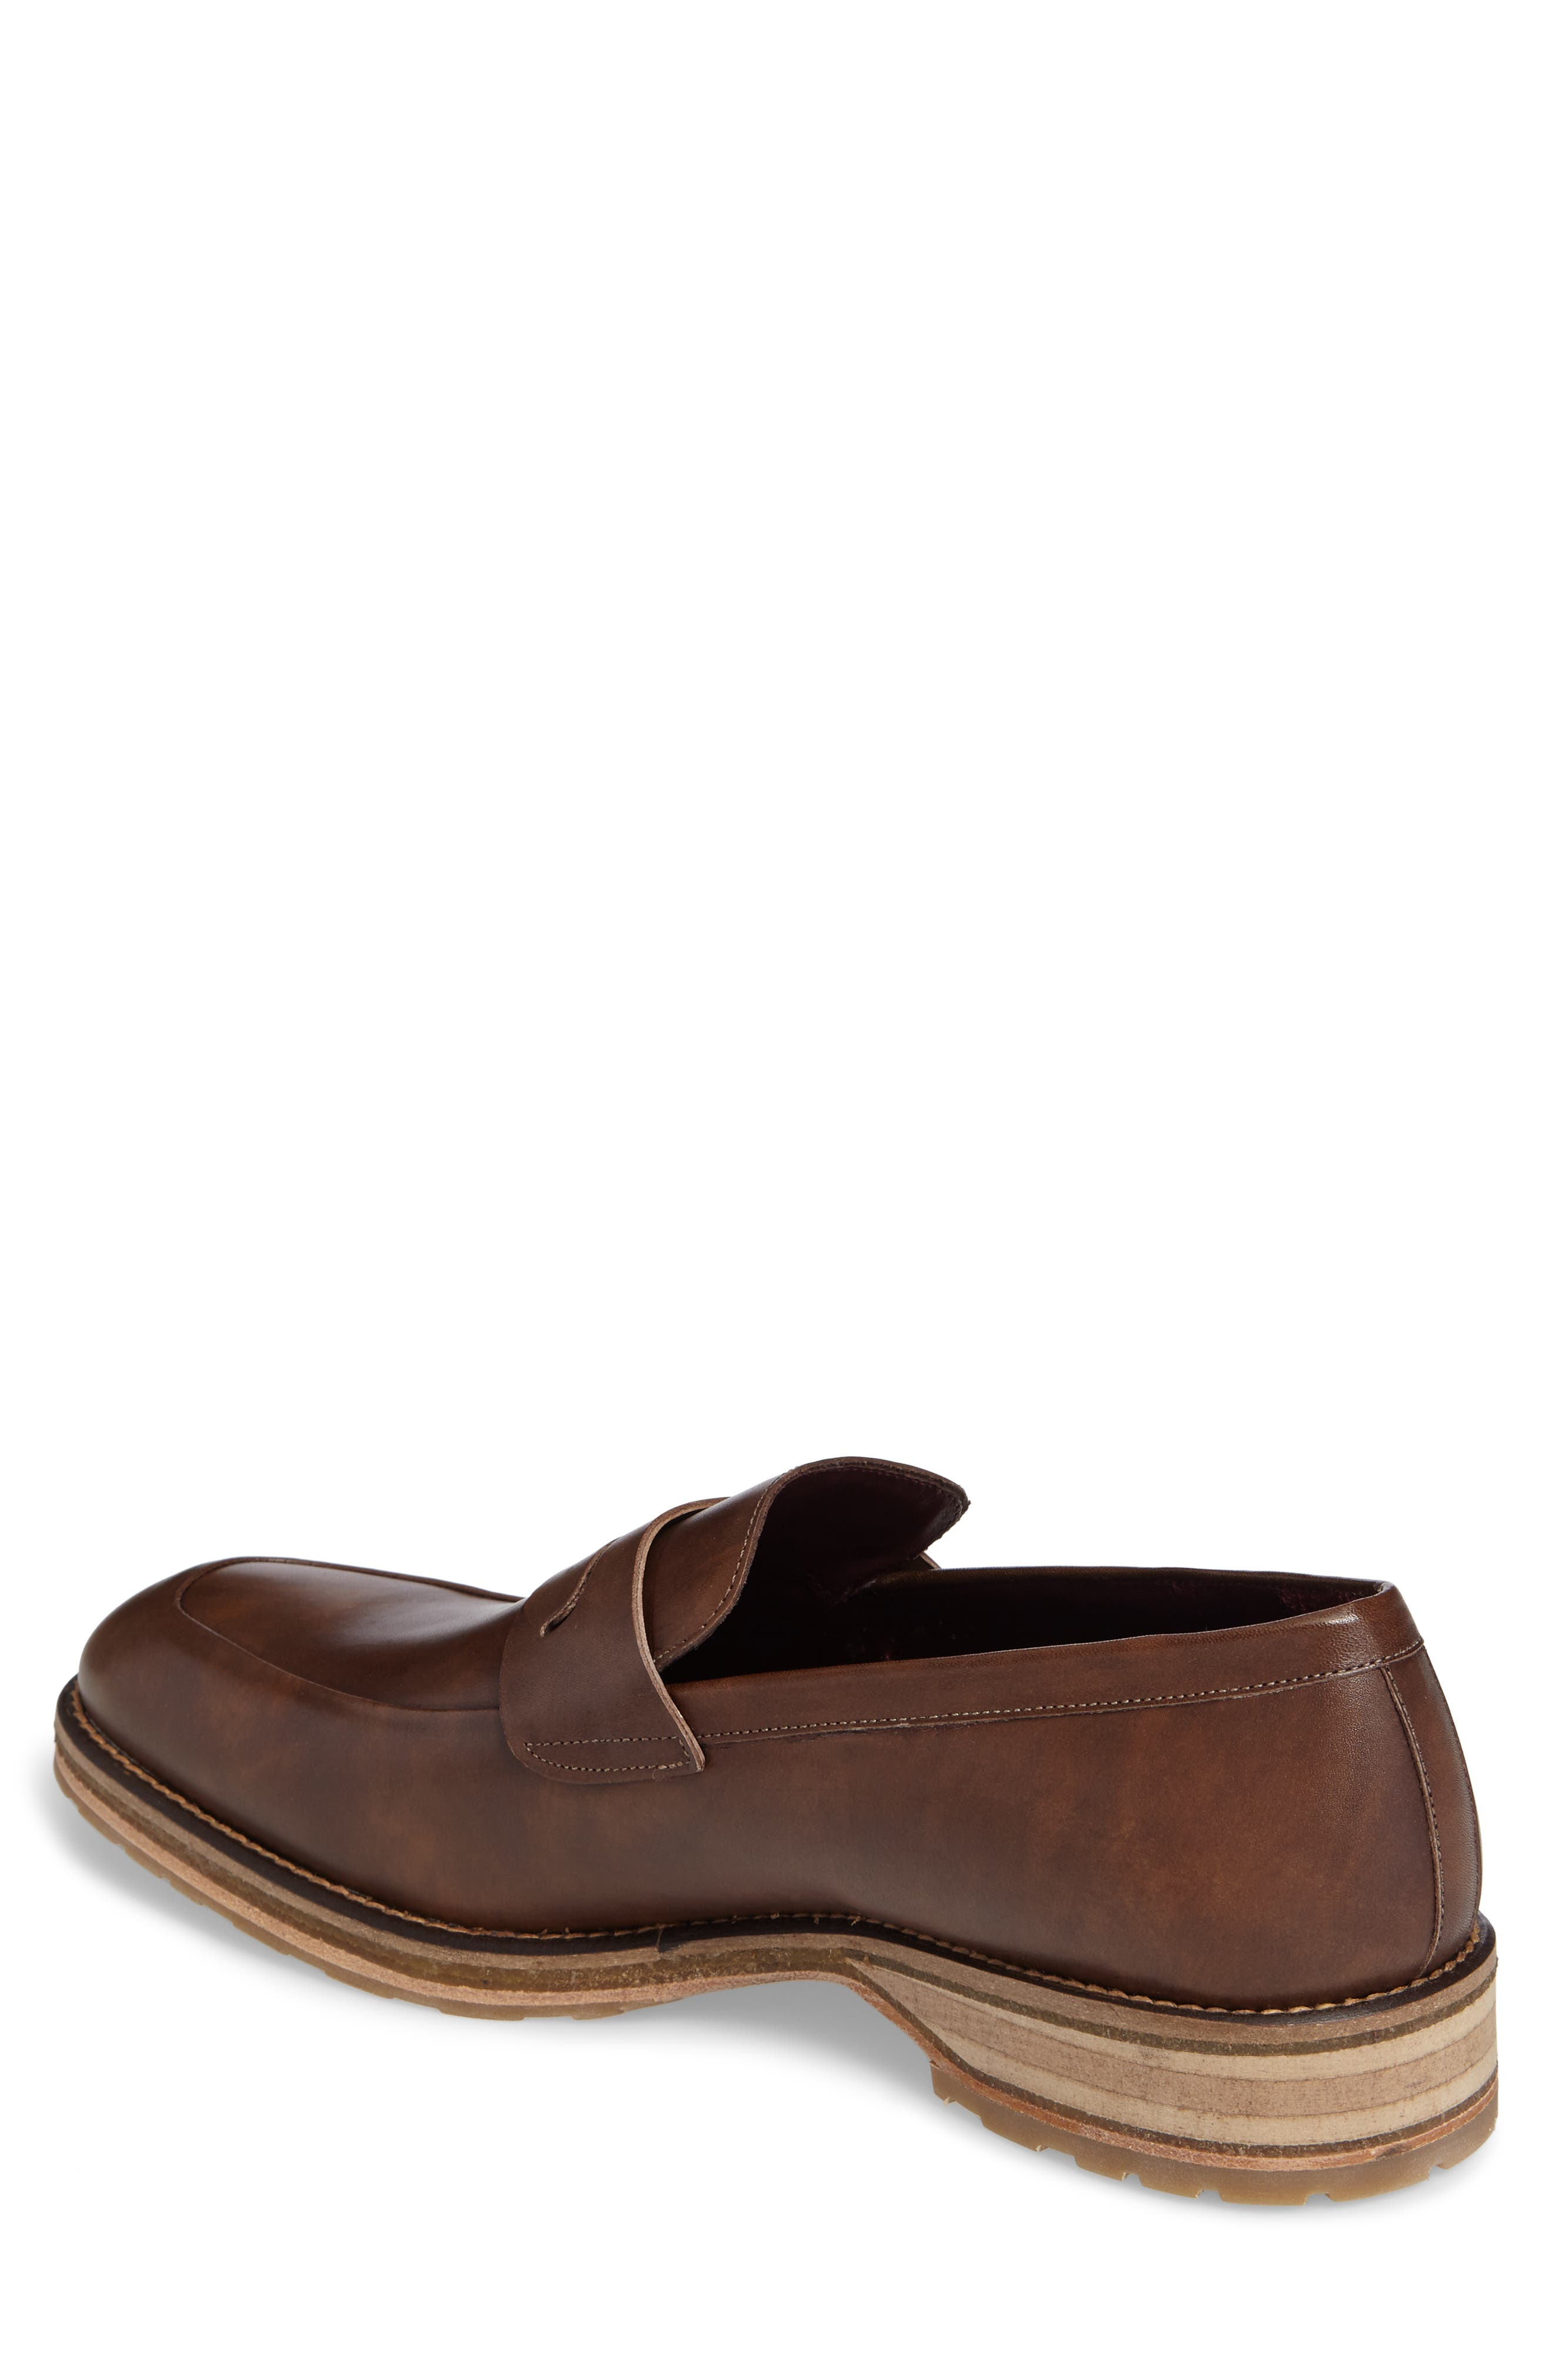 Cantonia Penny Loafer,                             Alternate thumbnail 2, color,                             Taupe Leather